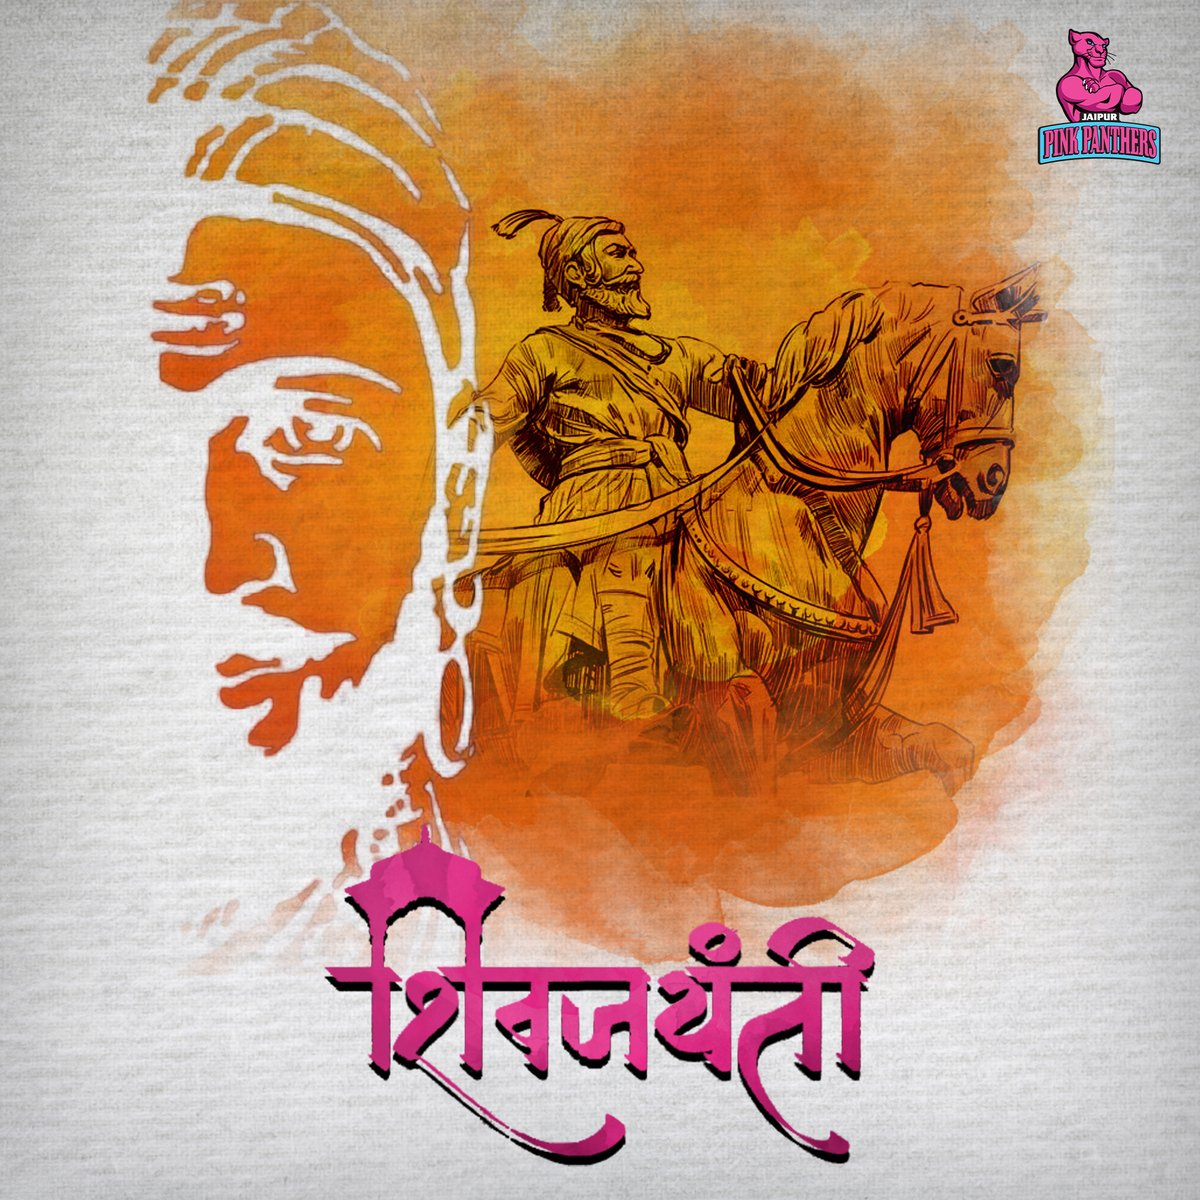 On this memorable occasion of Shivjayanti, let us remember the courageous acts of Chatrapati Shivaji Maharaj for the country.  #ShivJayanti #ShivajiMaharaj #RoarForPanthers